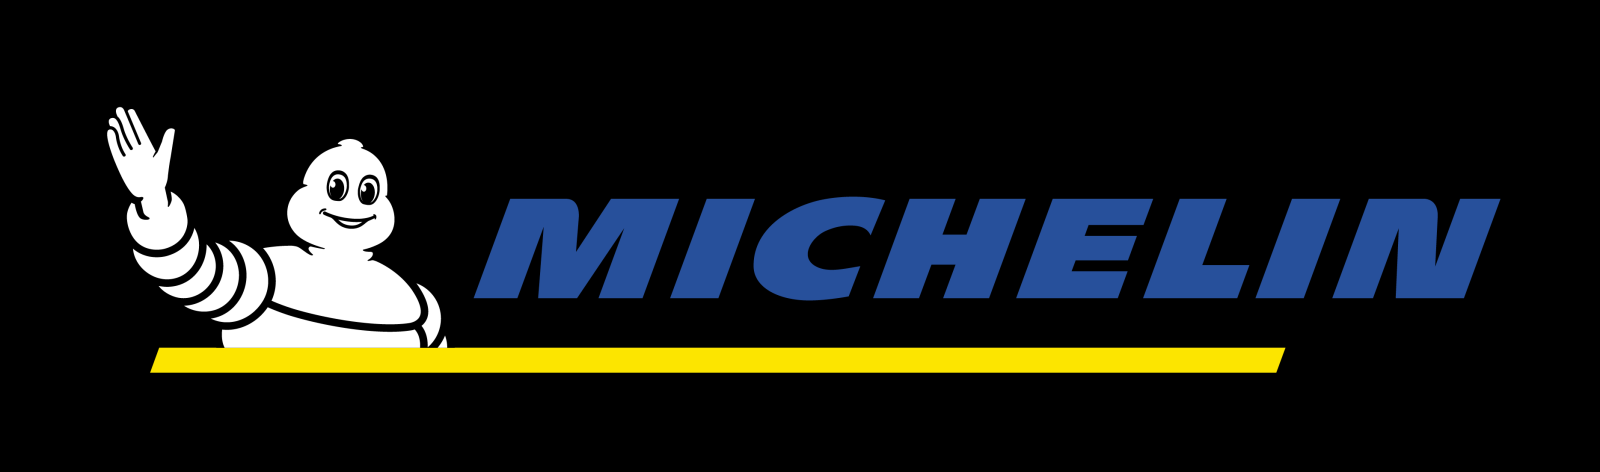 Michelin_Commercial_Long.png